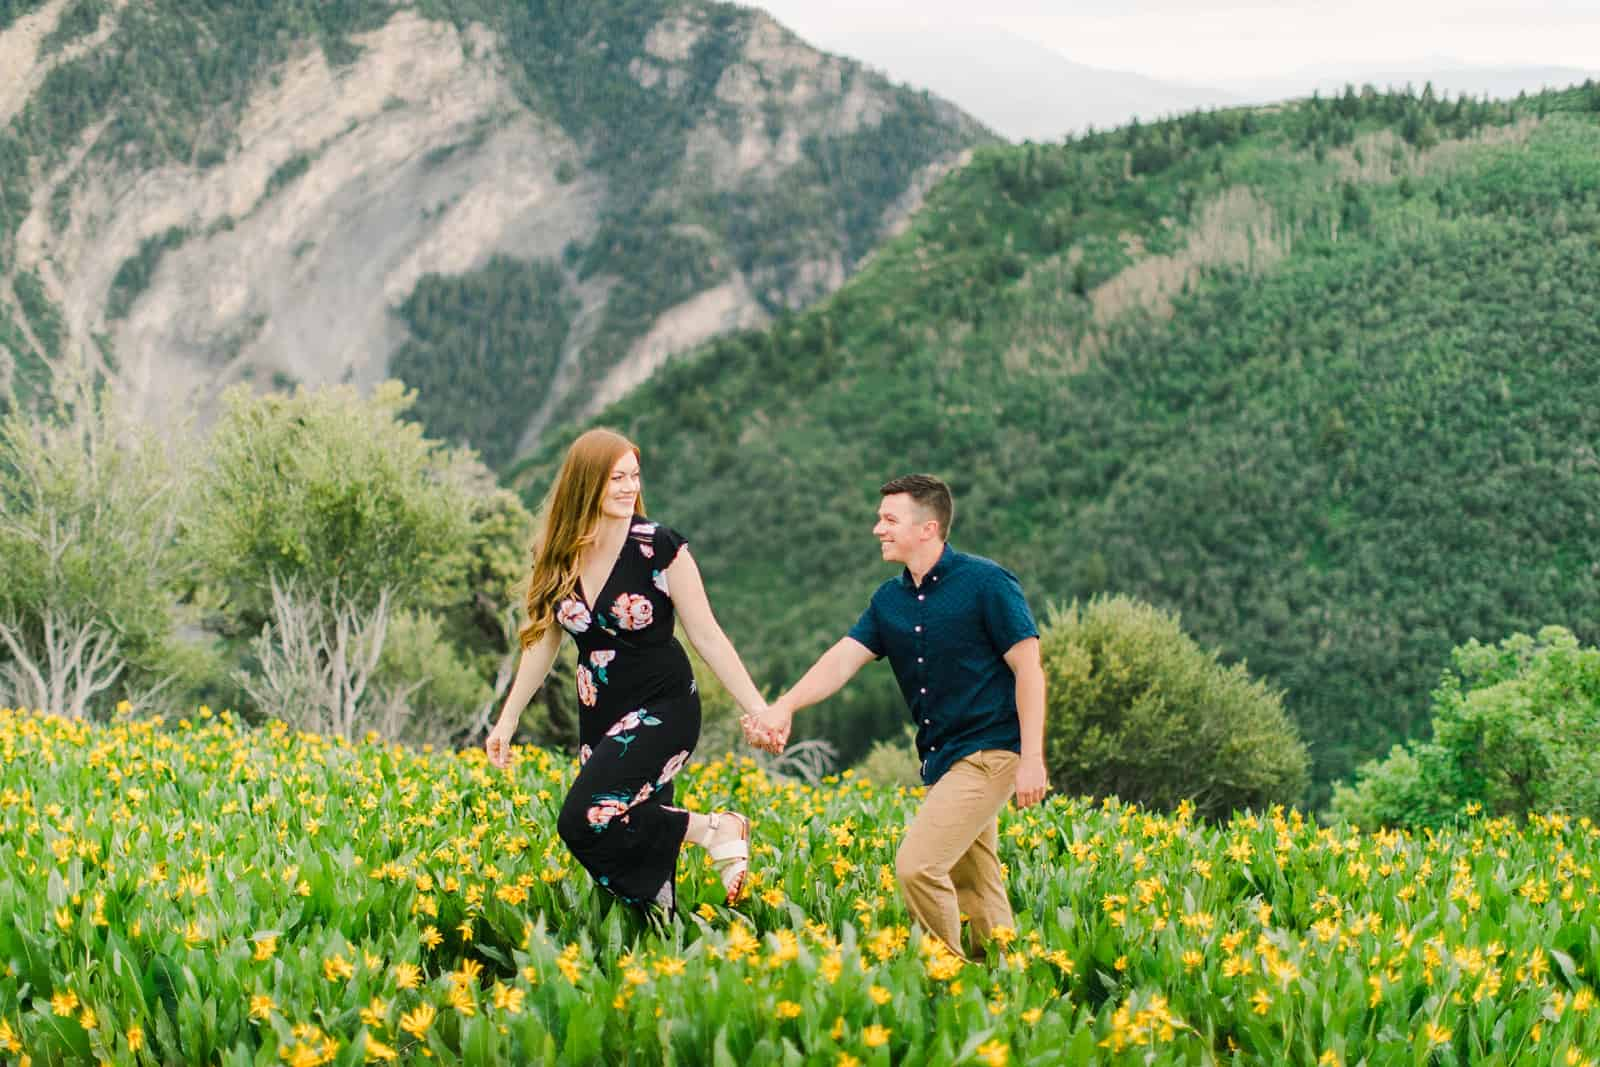 Provo Canyon wildflowers field engagement session, Utah wedding photography, engaged couple walking through the yellow flowers